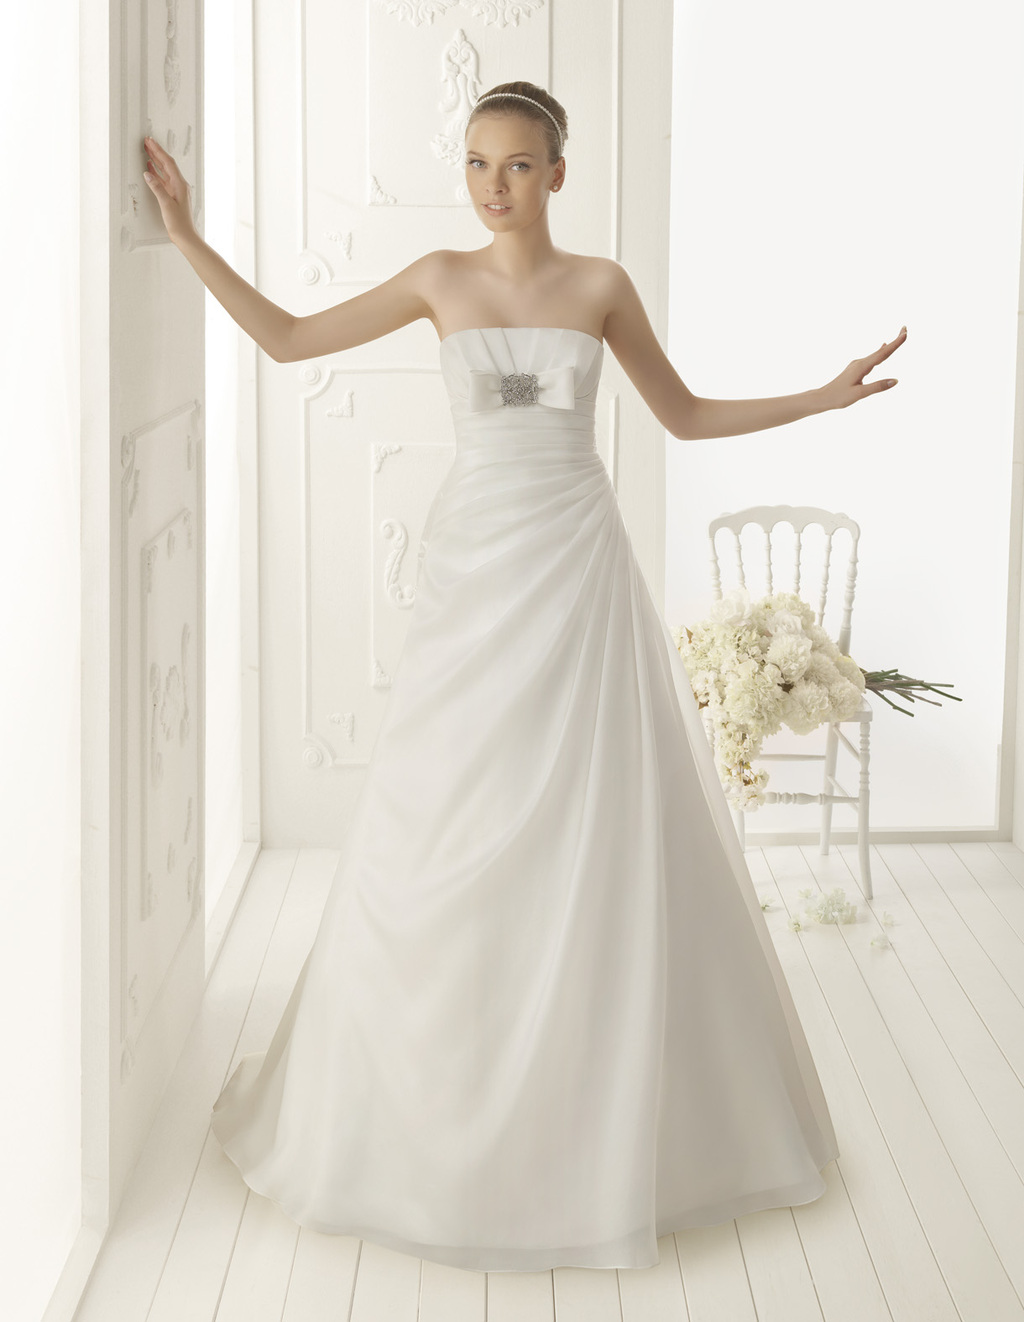 Aire-barcelona-wedding-dress-2013-vintage-bridal-collection-vainilla.full